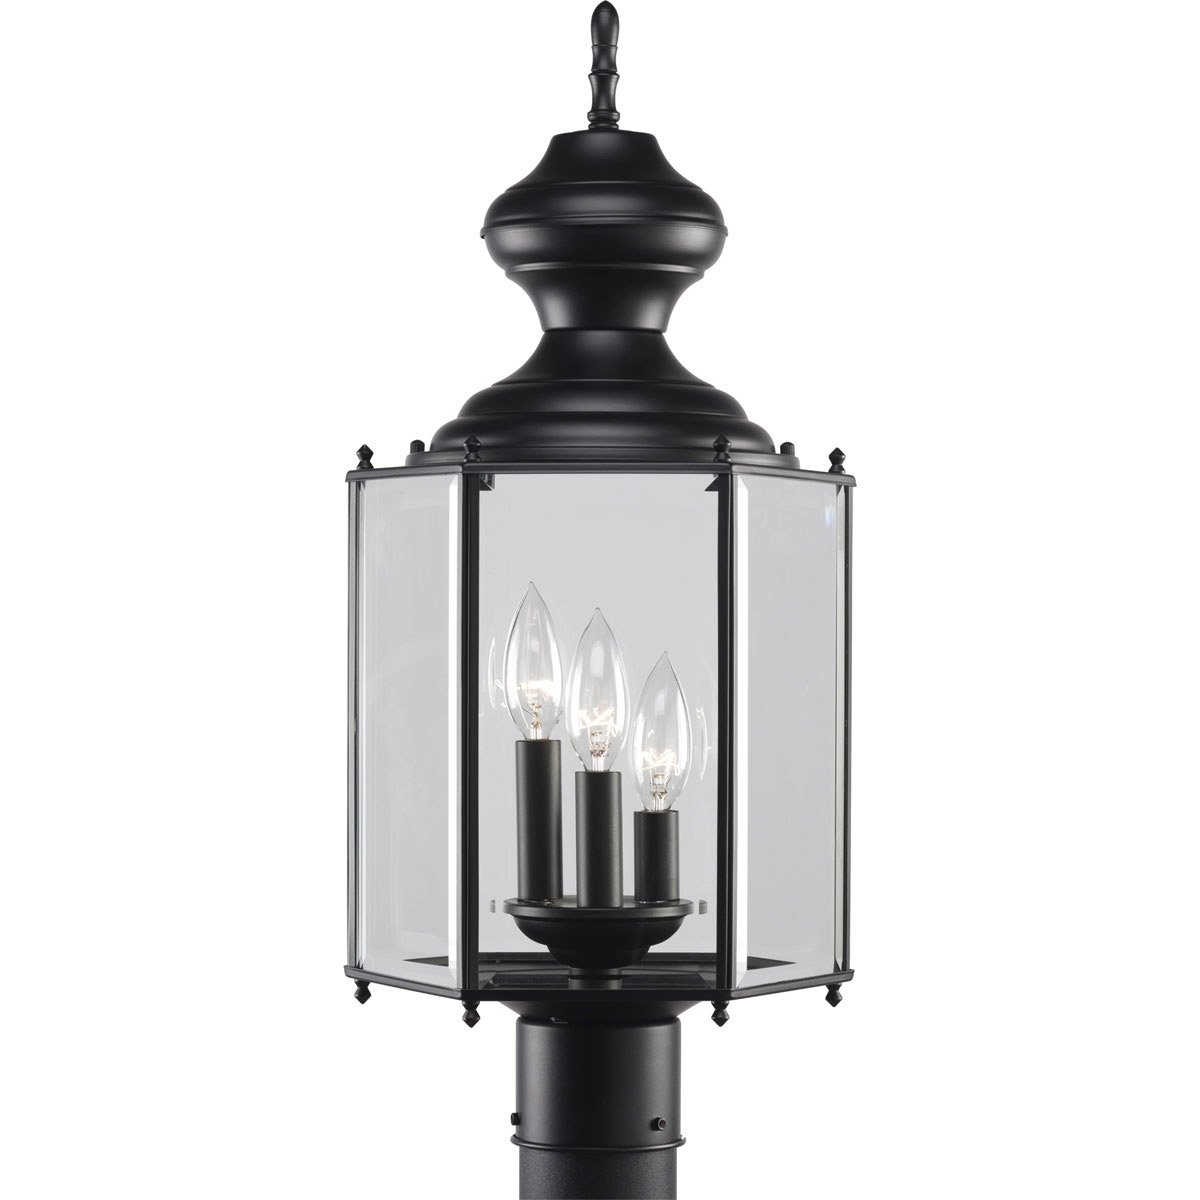 Amazon progress lighting p5432 31 3 light post lantern black amazon progress lighting p5432 31 3 light post lantern black outdoor post lights garden outdoor aloadofball Gallery